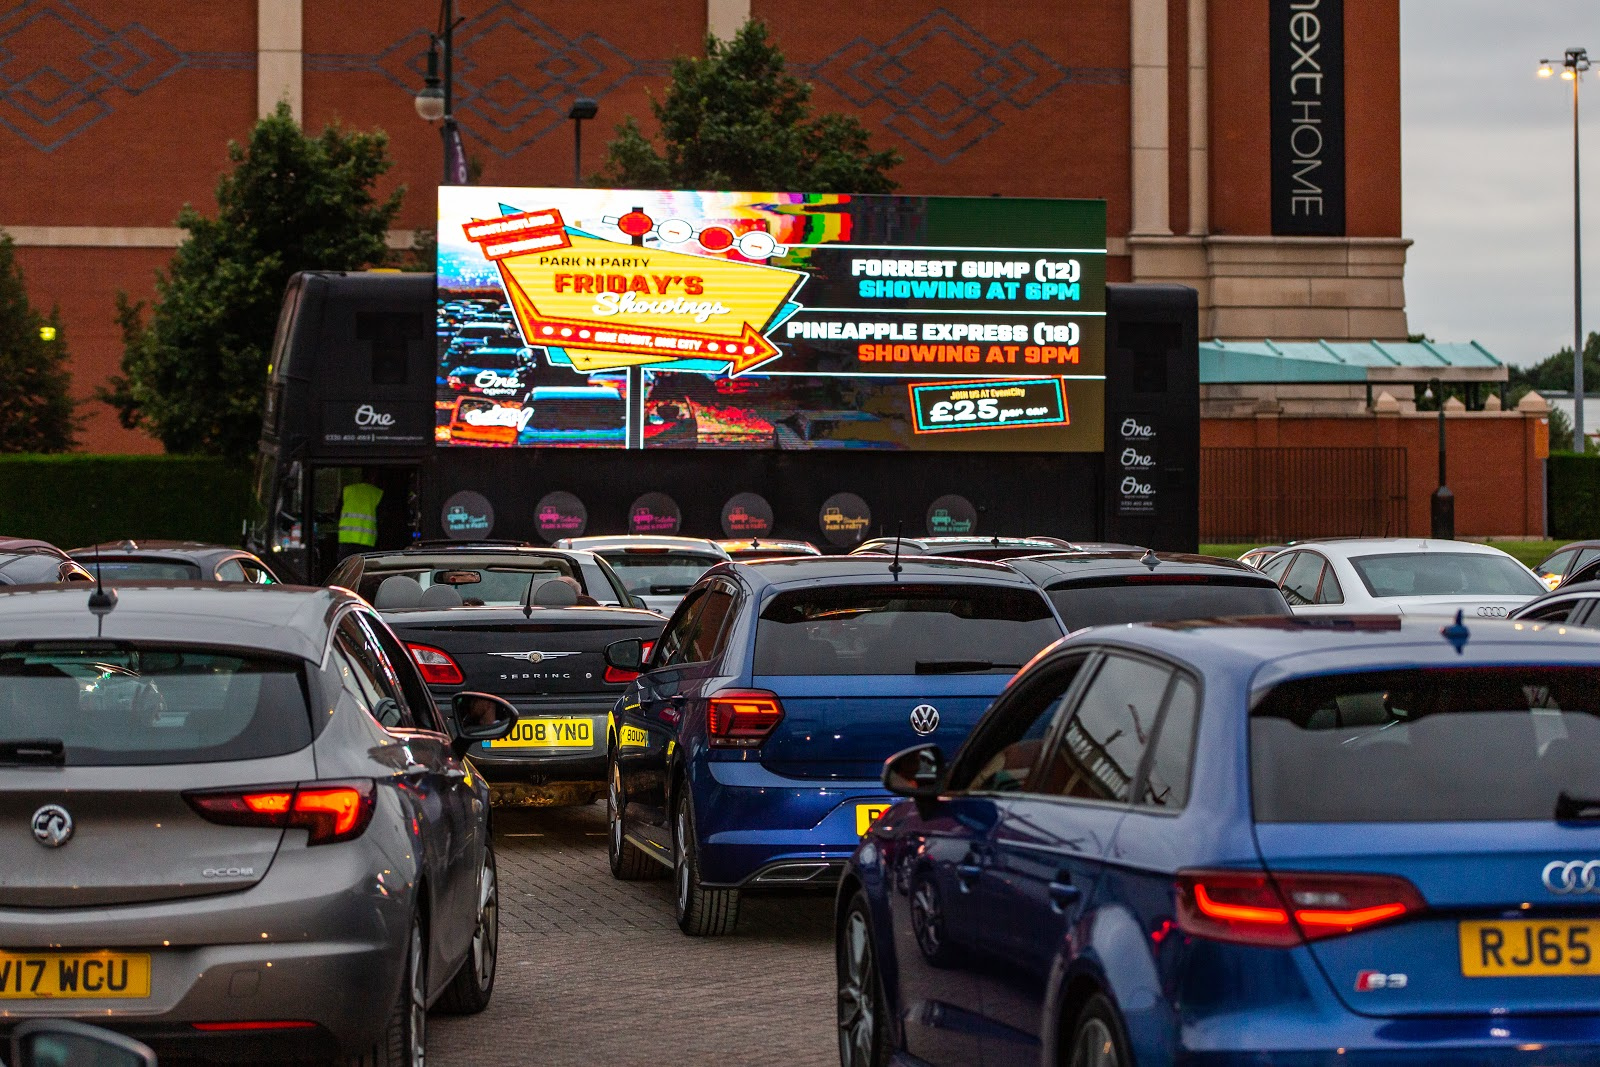 More movies and showtimes added to Manchester's epic drive-in cinema this week, The Manc